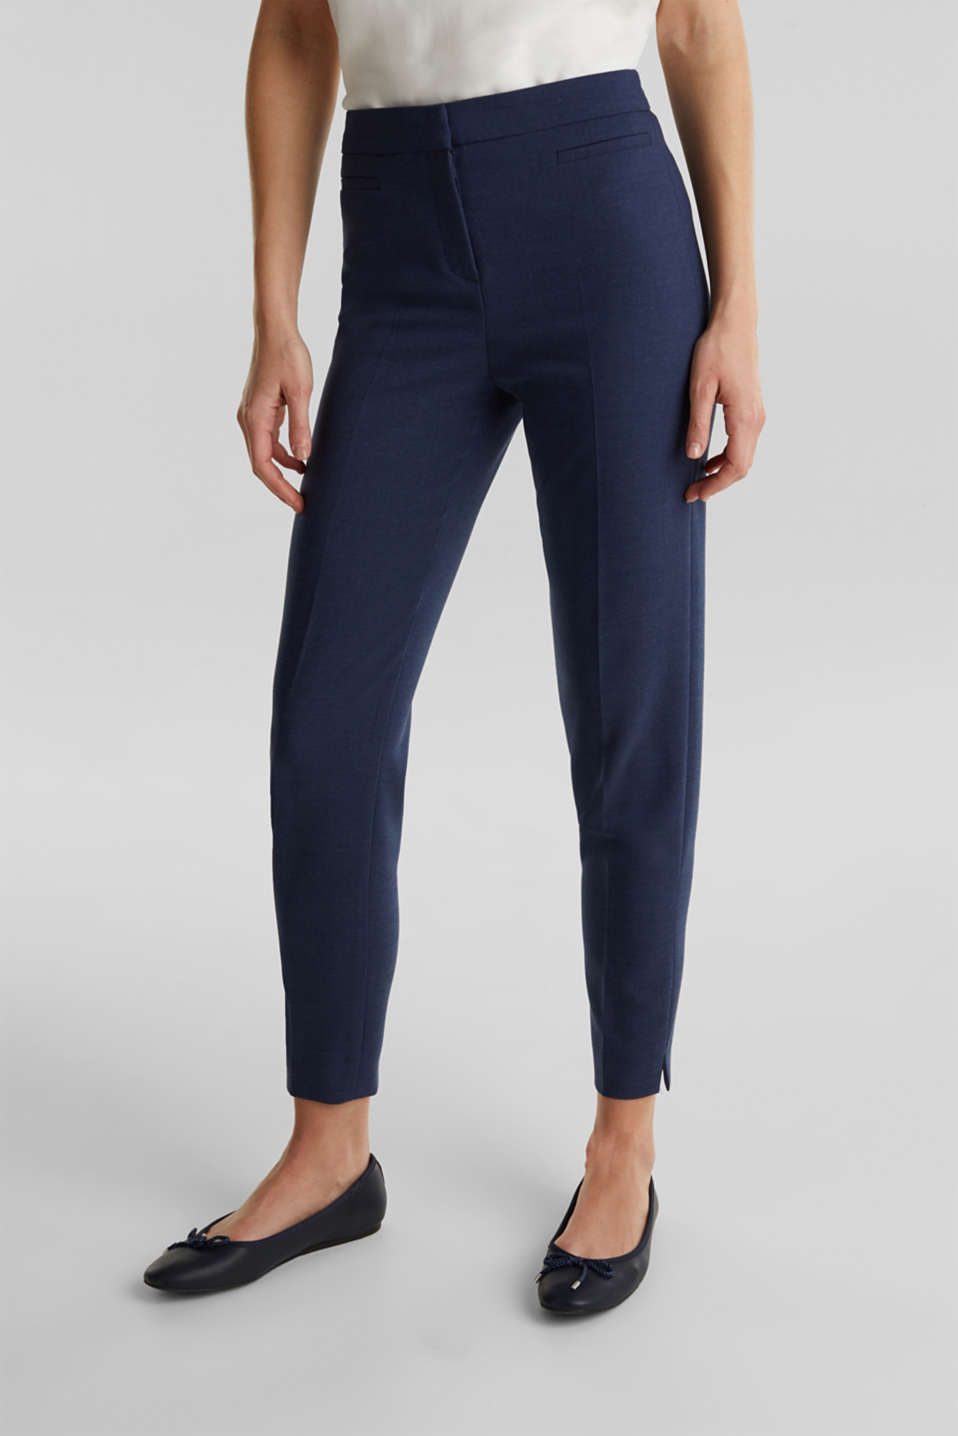 JERSEY mix + match trousers, GREY BLUE 5, detail image number 6